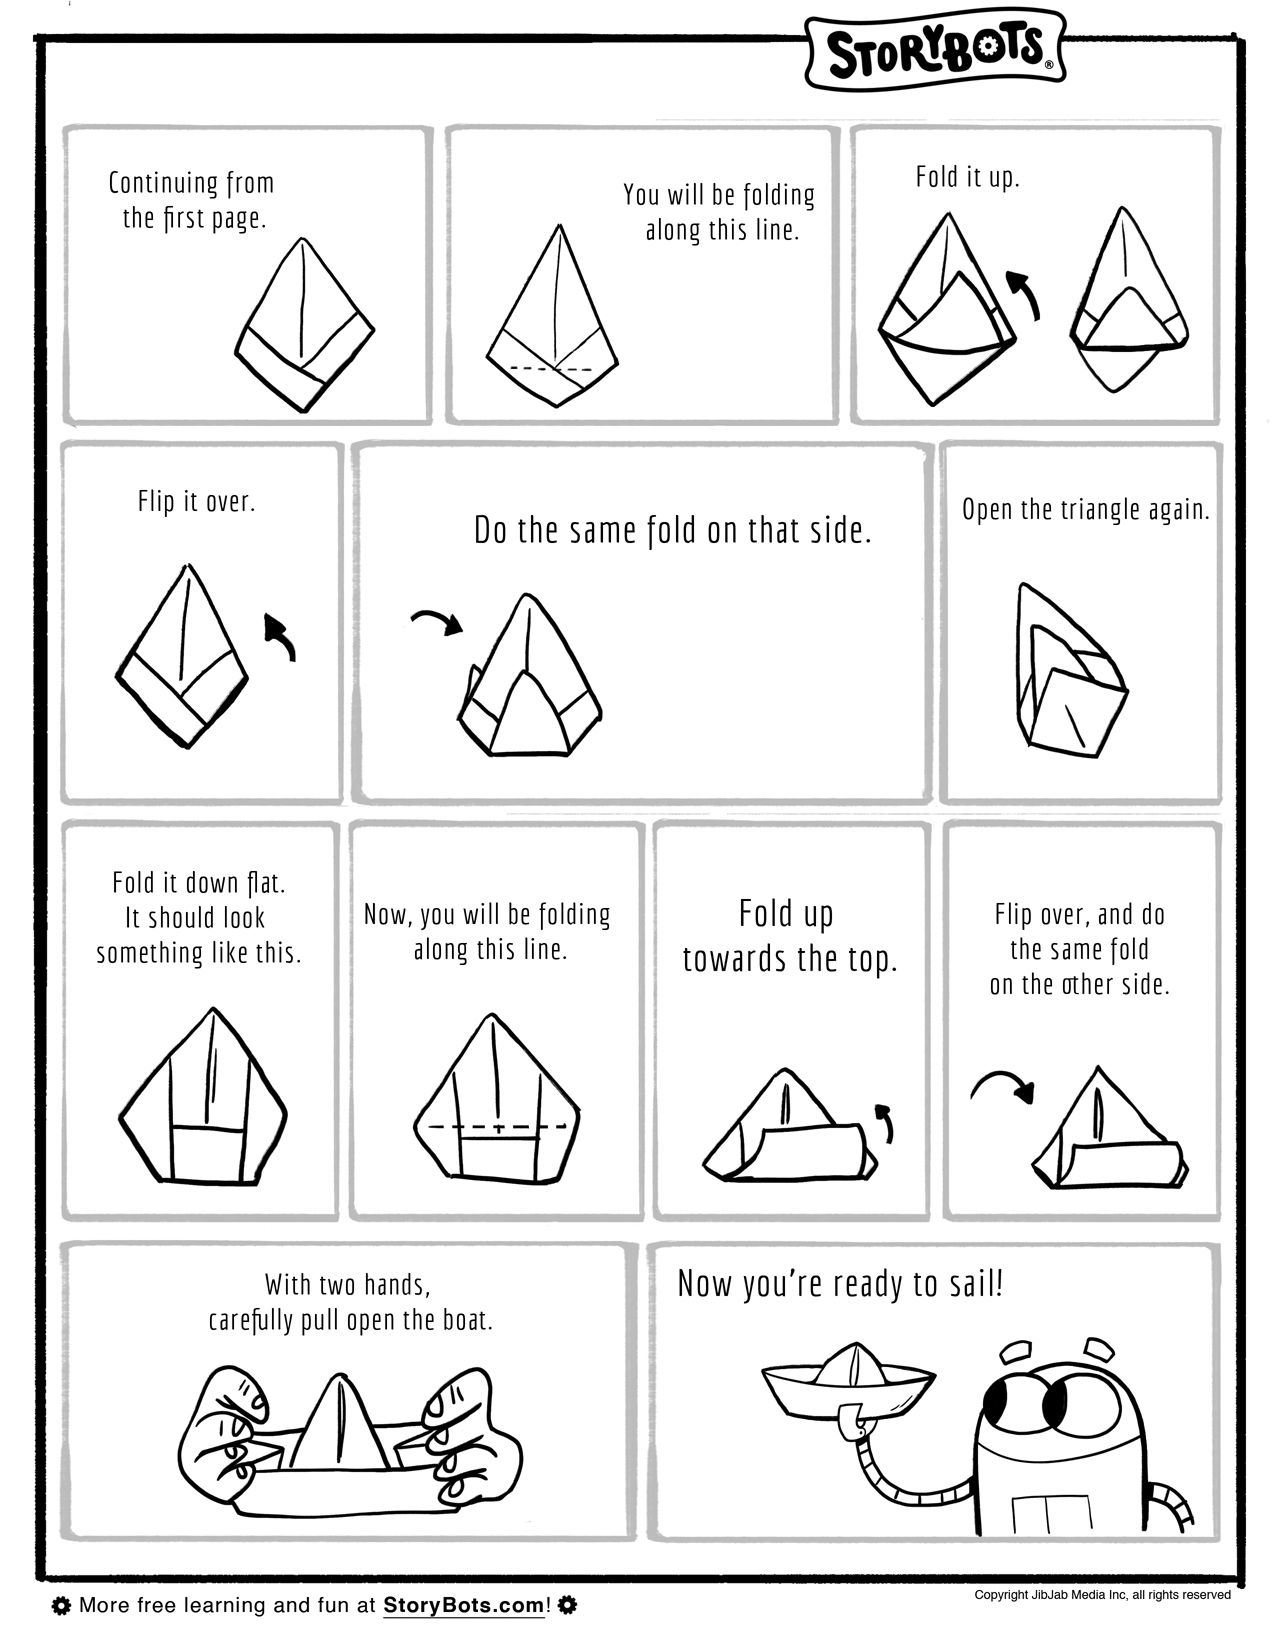 how to fold a paper boat part 2 summer activity sheets activity sheets summer activities. Black Bedroom Furniture Sets. Home Design Ideas